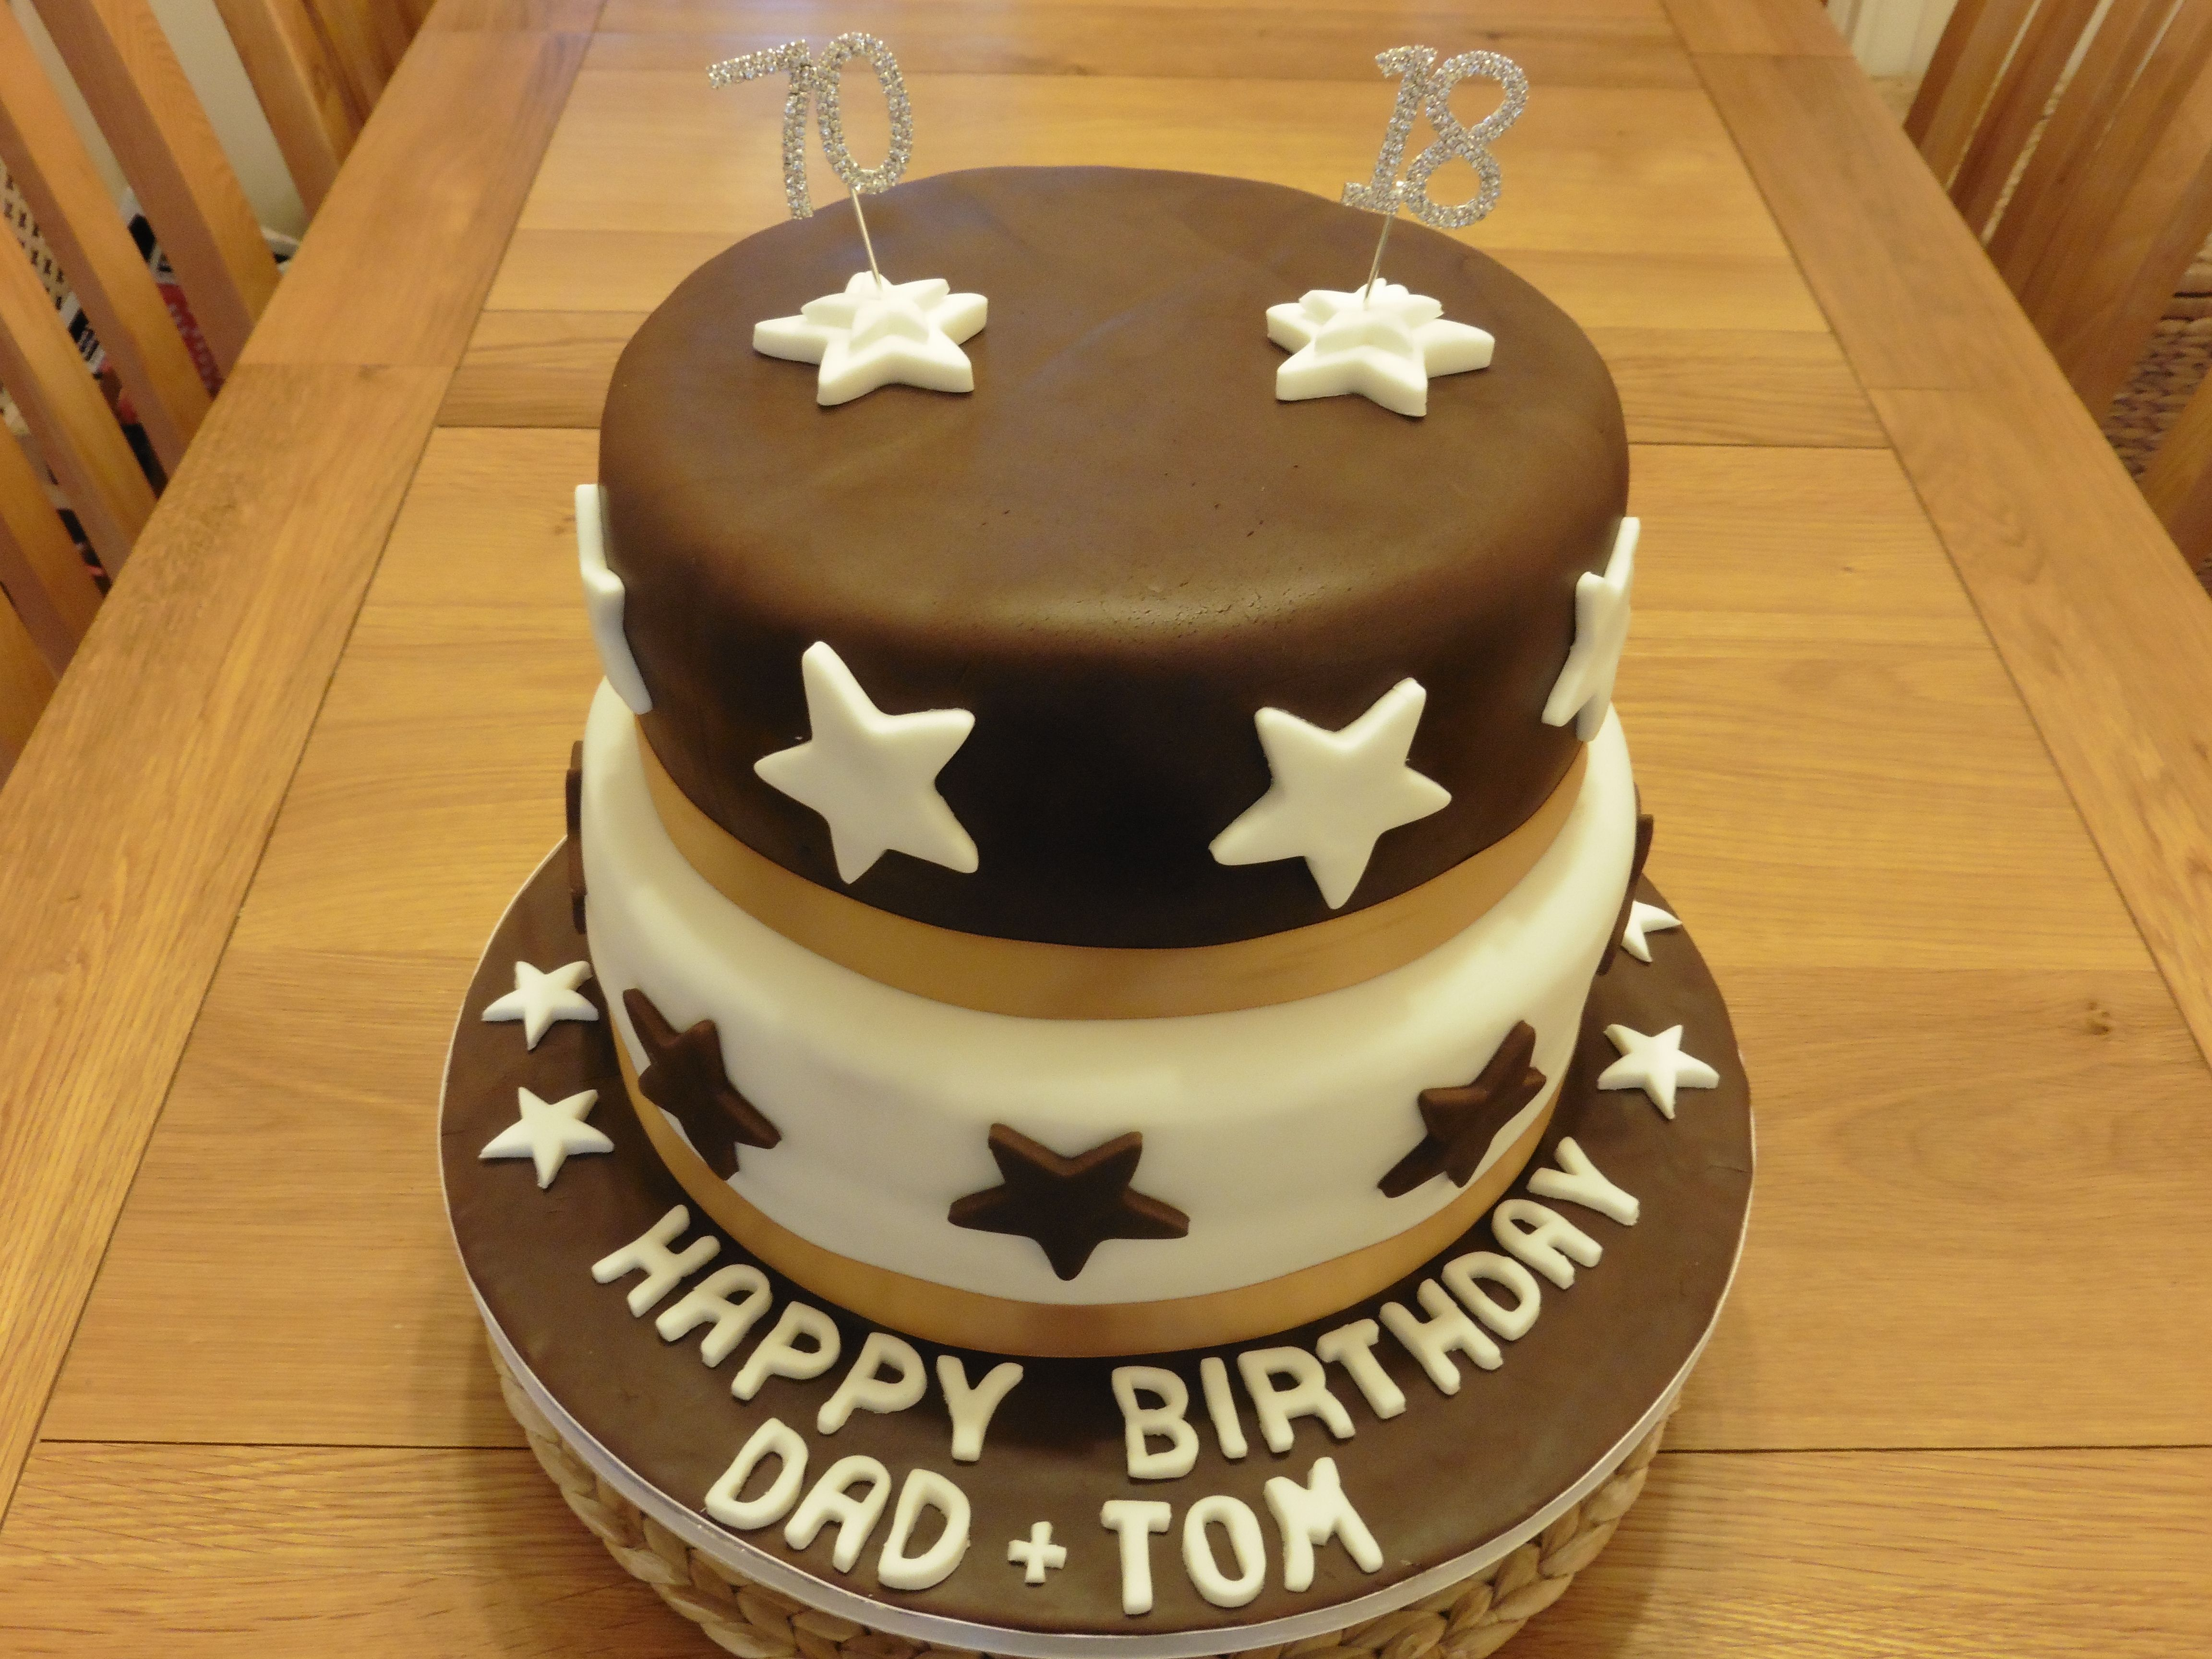 Chocolate Fudge and Vanilla Birthday Cake made for my Dad and Sons